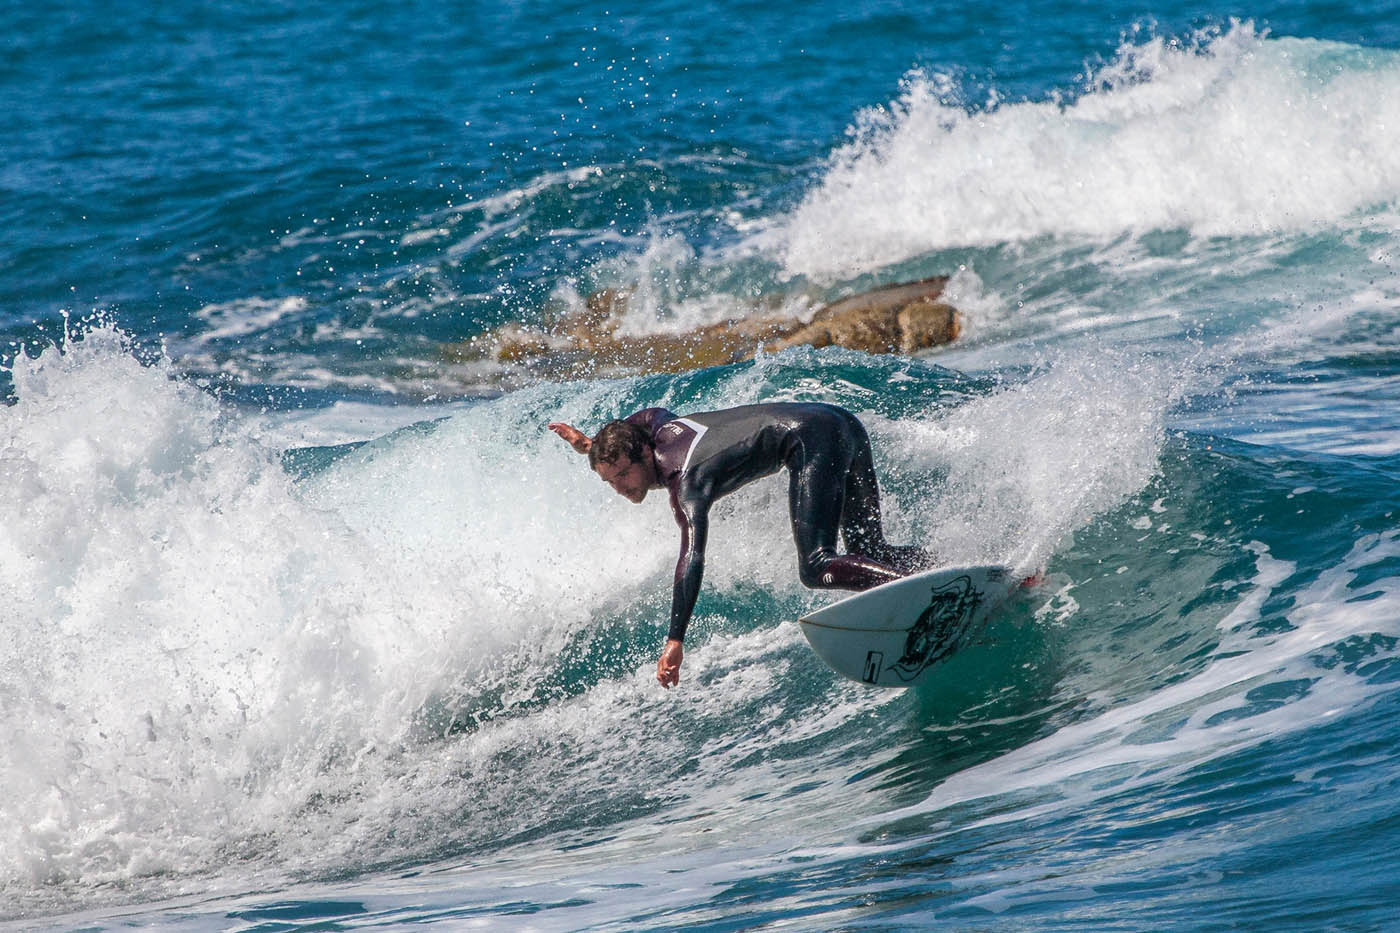 Visit Elba Island Tuscany Tourism Surfing The Waves